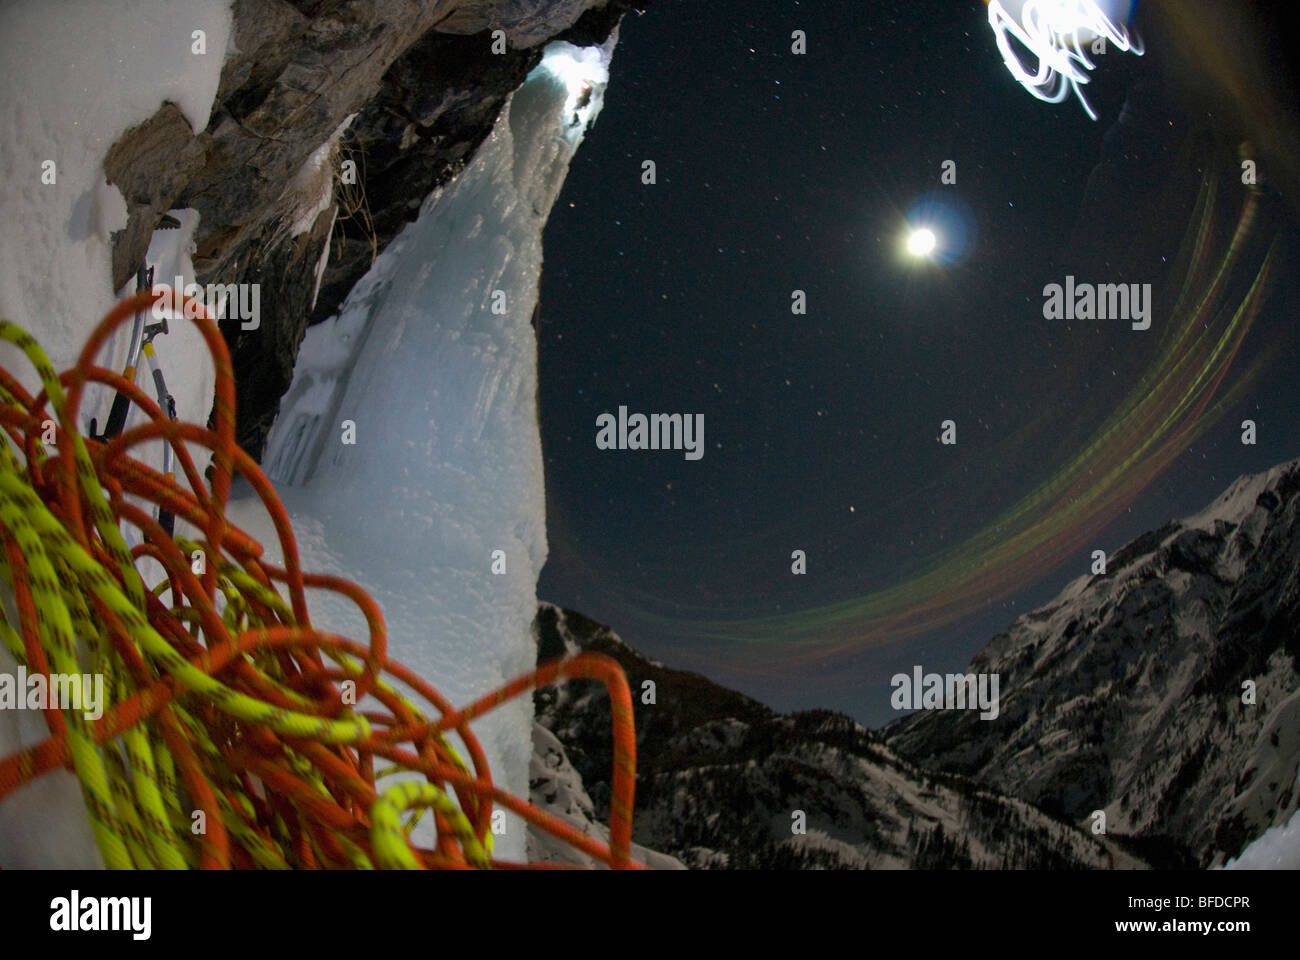 Night view of ropes as a young man ice climbs with a headlamp under a full moon. Stock Photo